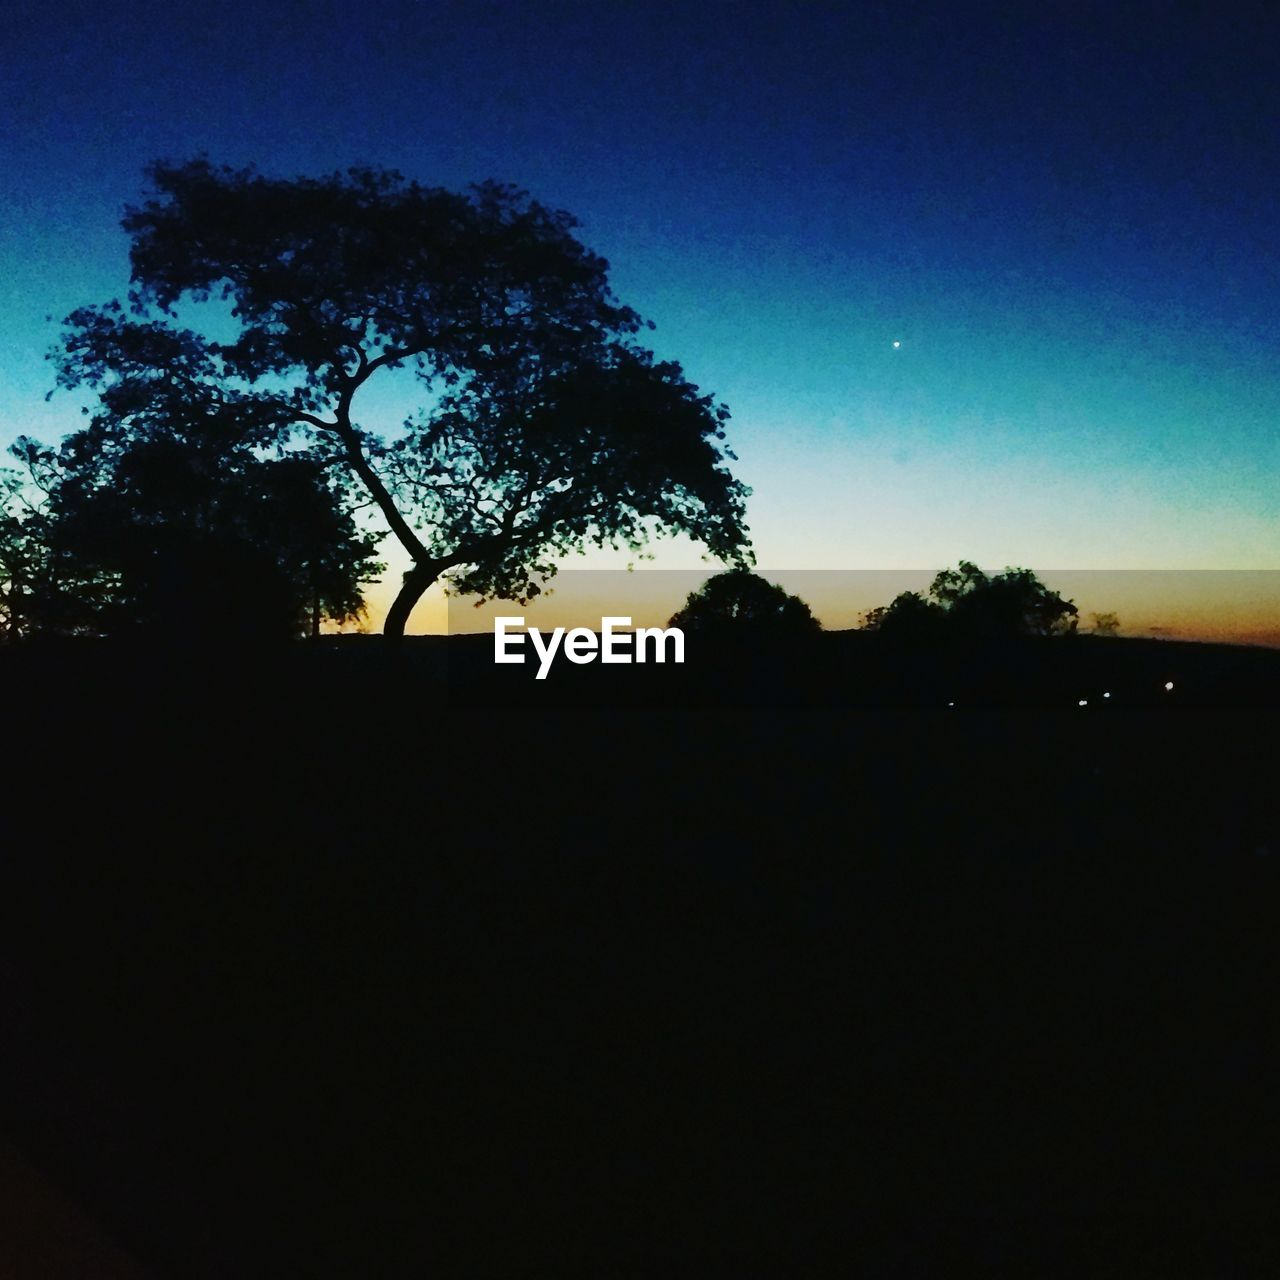 silhouette, tree, dark, sunset, nature, dusk, clear sky, sky, tranquil scene, no people, tranquility, scenics, moon, beauty in nature, outdoors, night